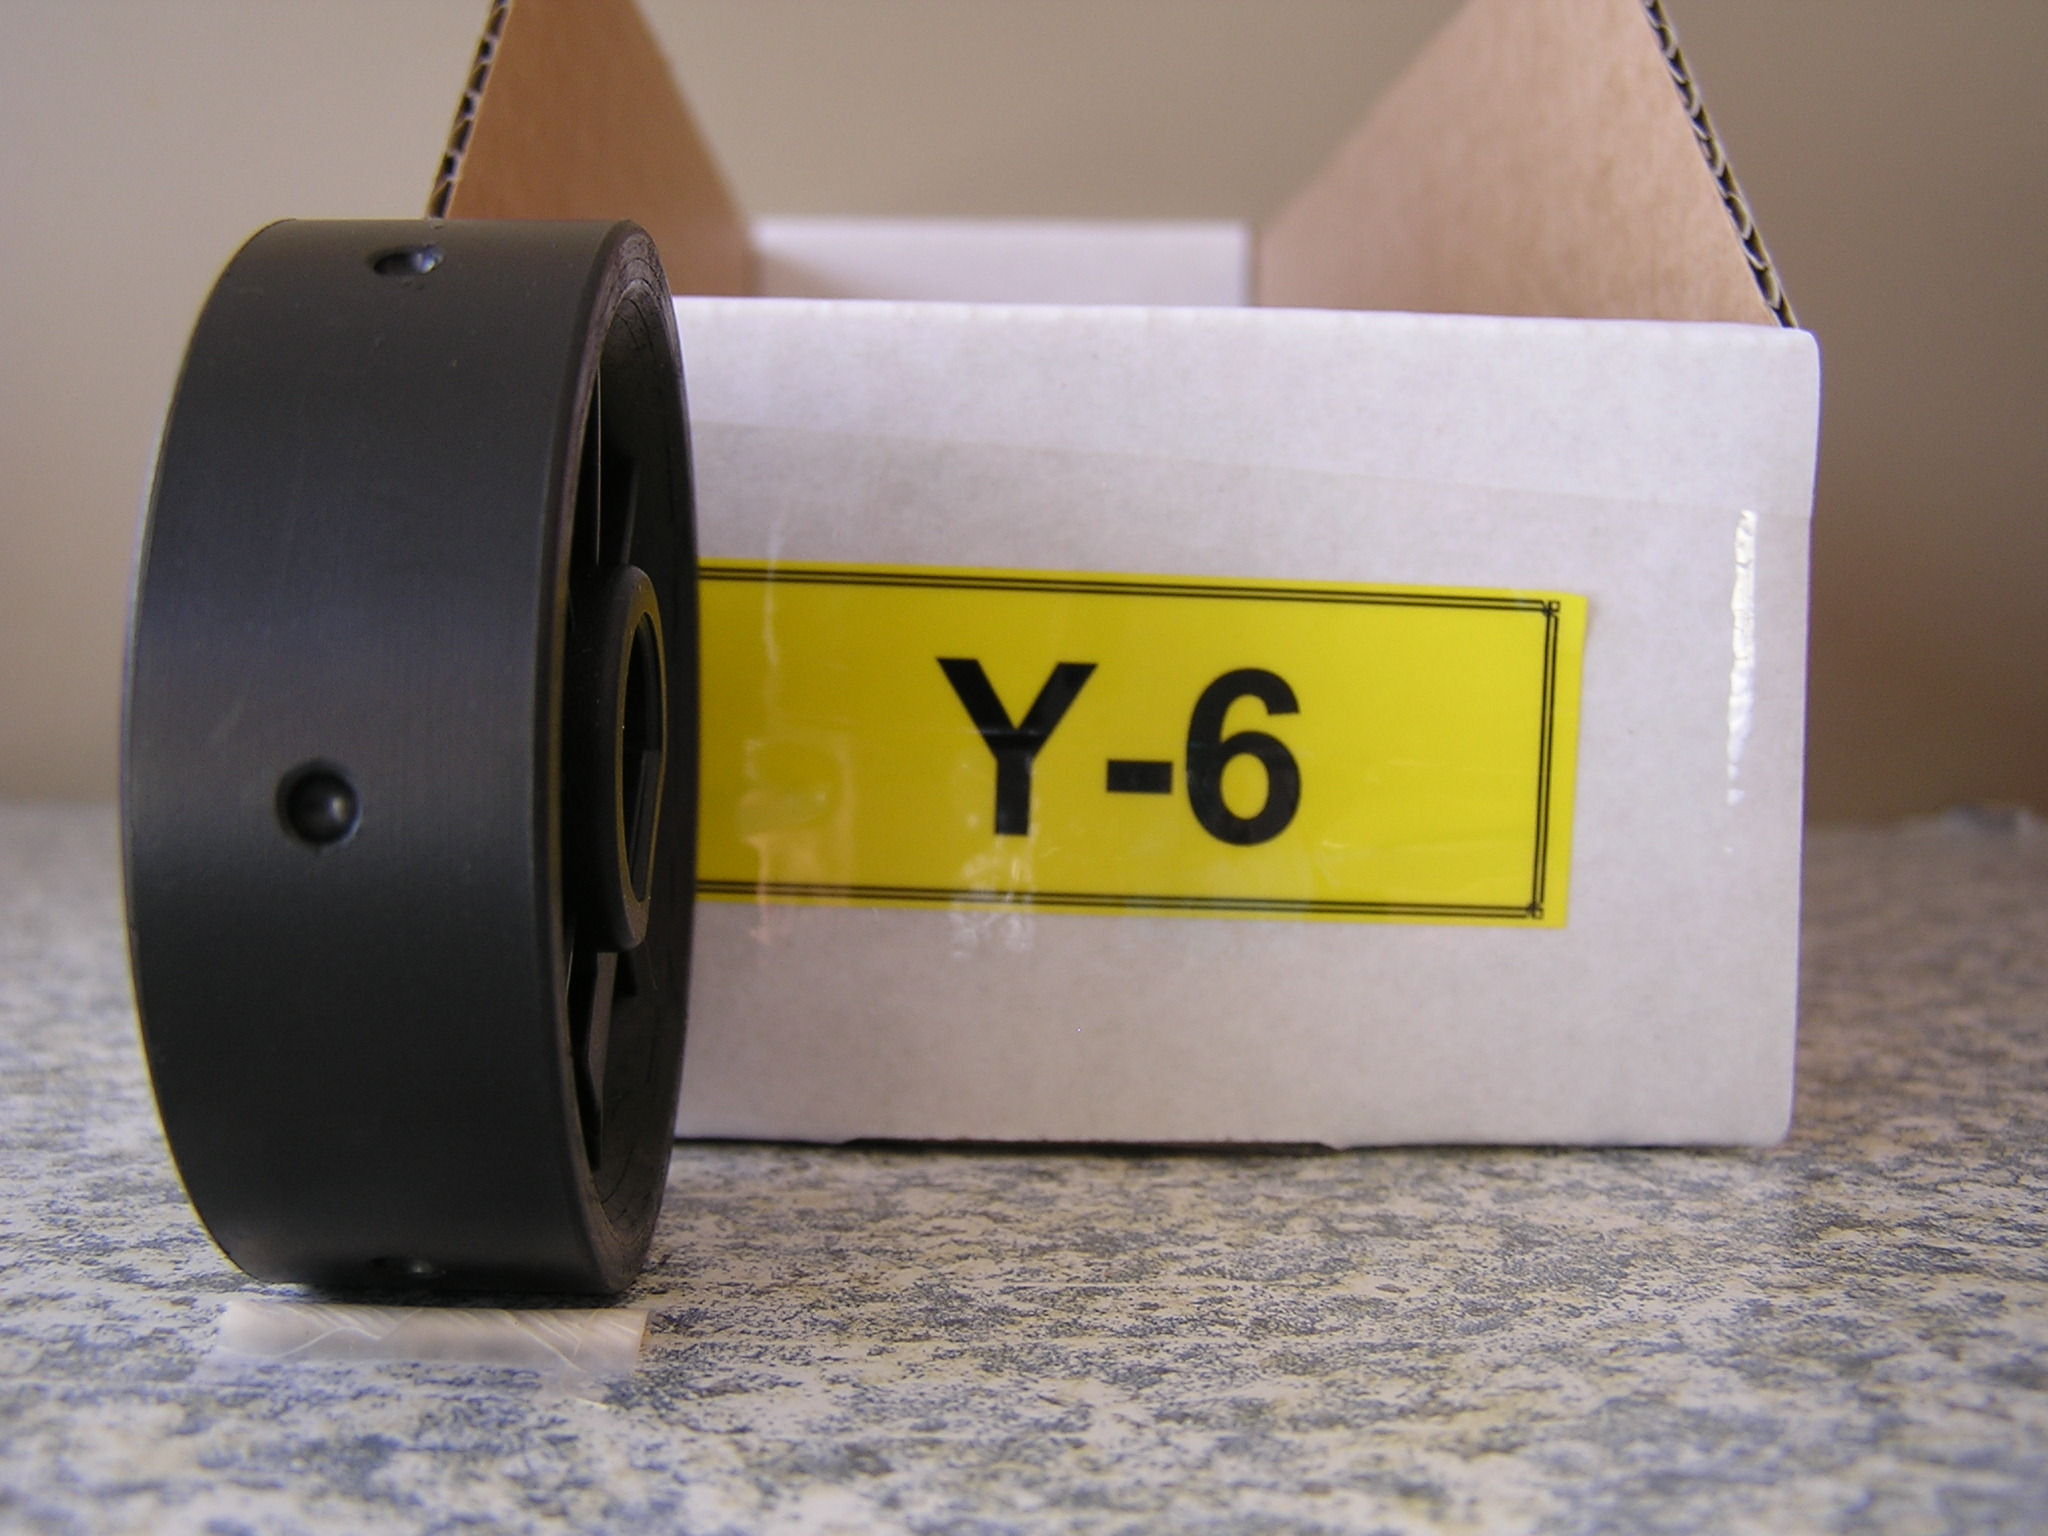 Y-6 Roller for Jang Seeder, 3.5 mm Slot, 6 Slots on the Roller